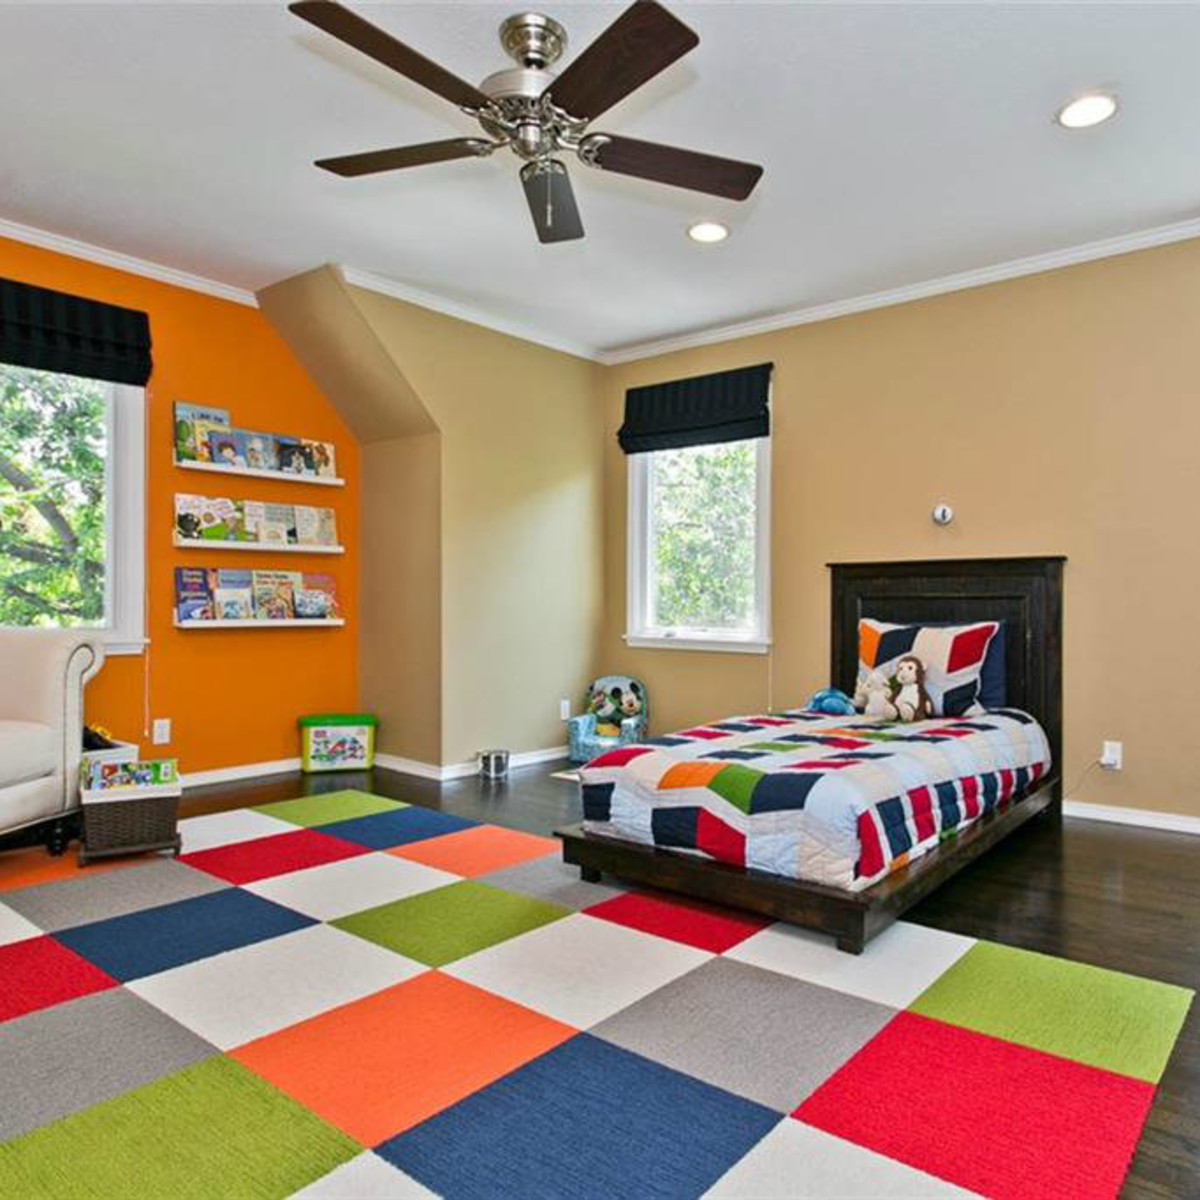 Bedroom at 9722 Boedecker in Dallas